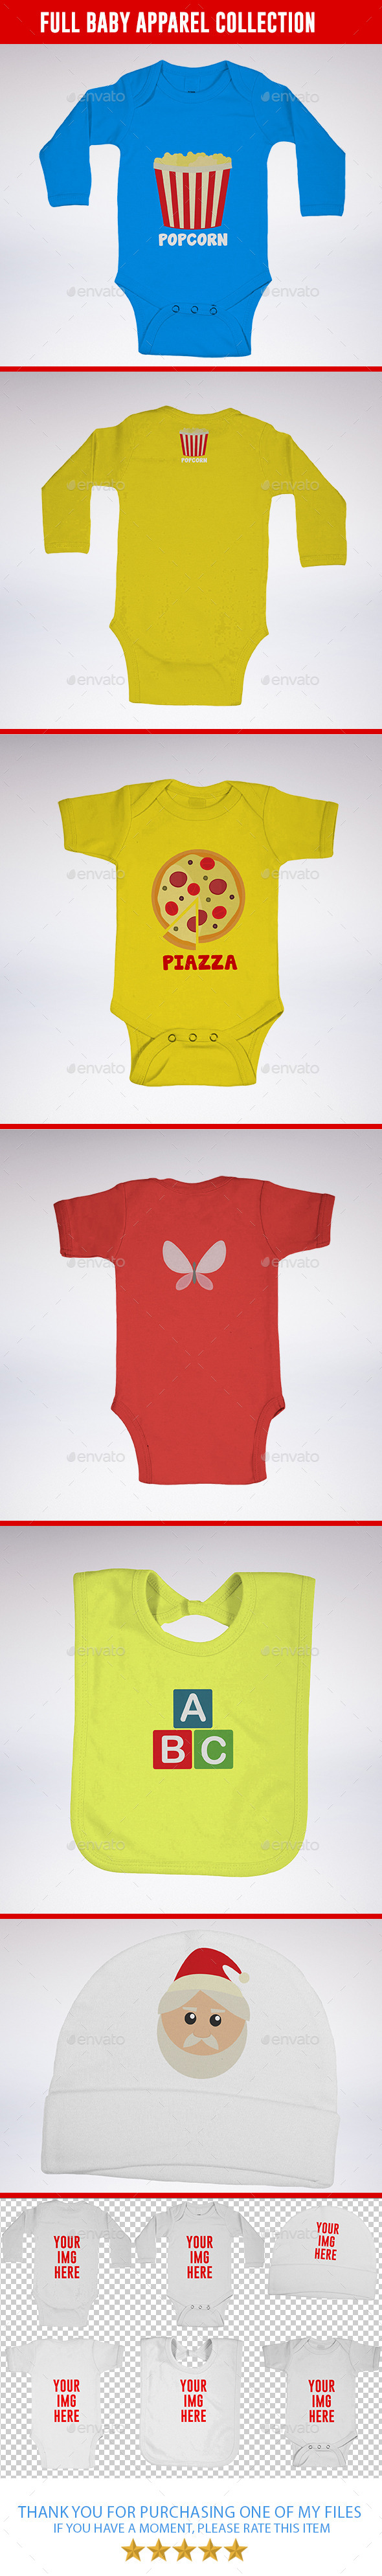 GraphicRiver Full Baby Apparel Collection 8954779